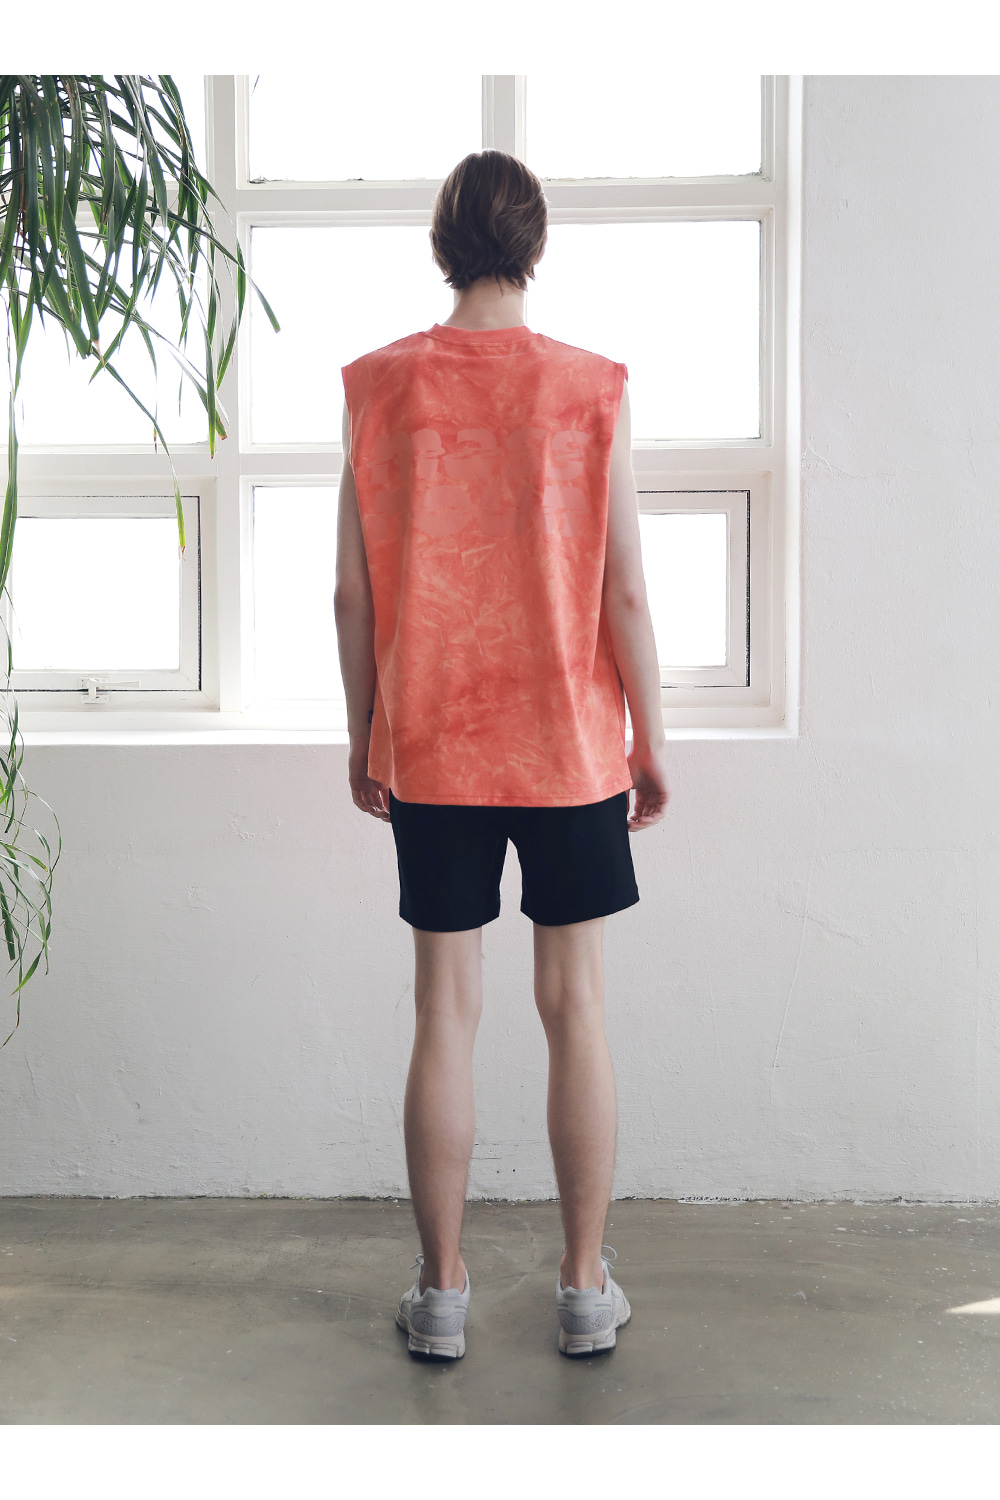 매스노운(MASSNOUN) SL LOGO BASIC SHORT PANTS MSNSP003-BK